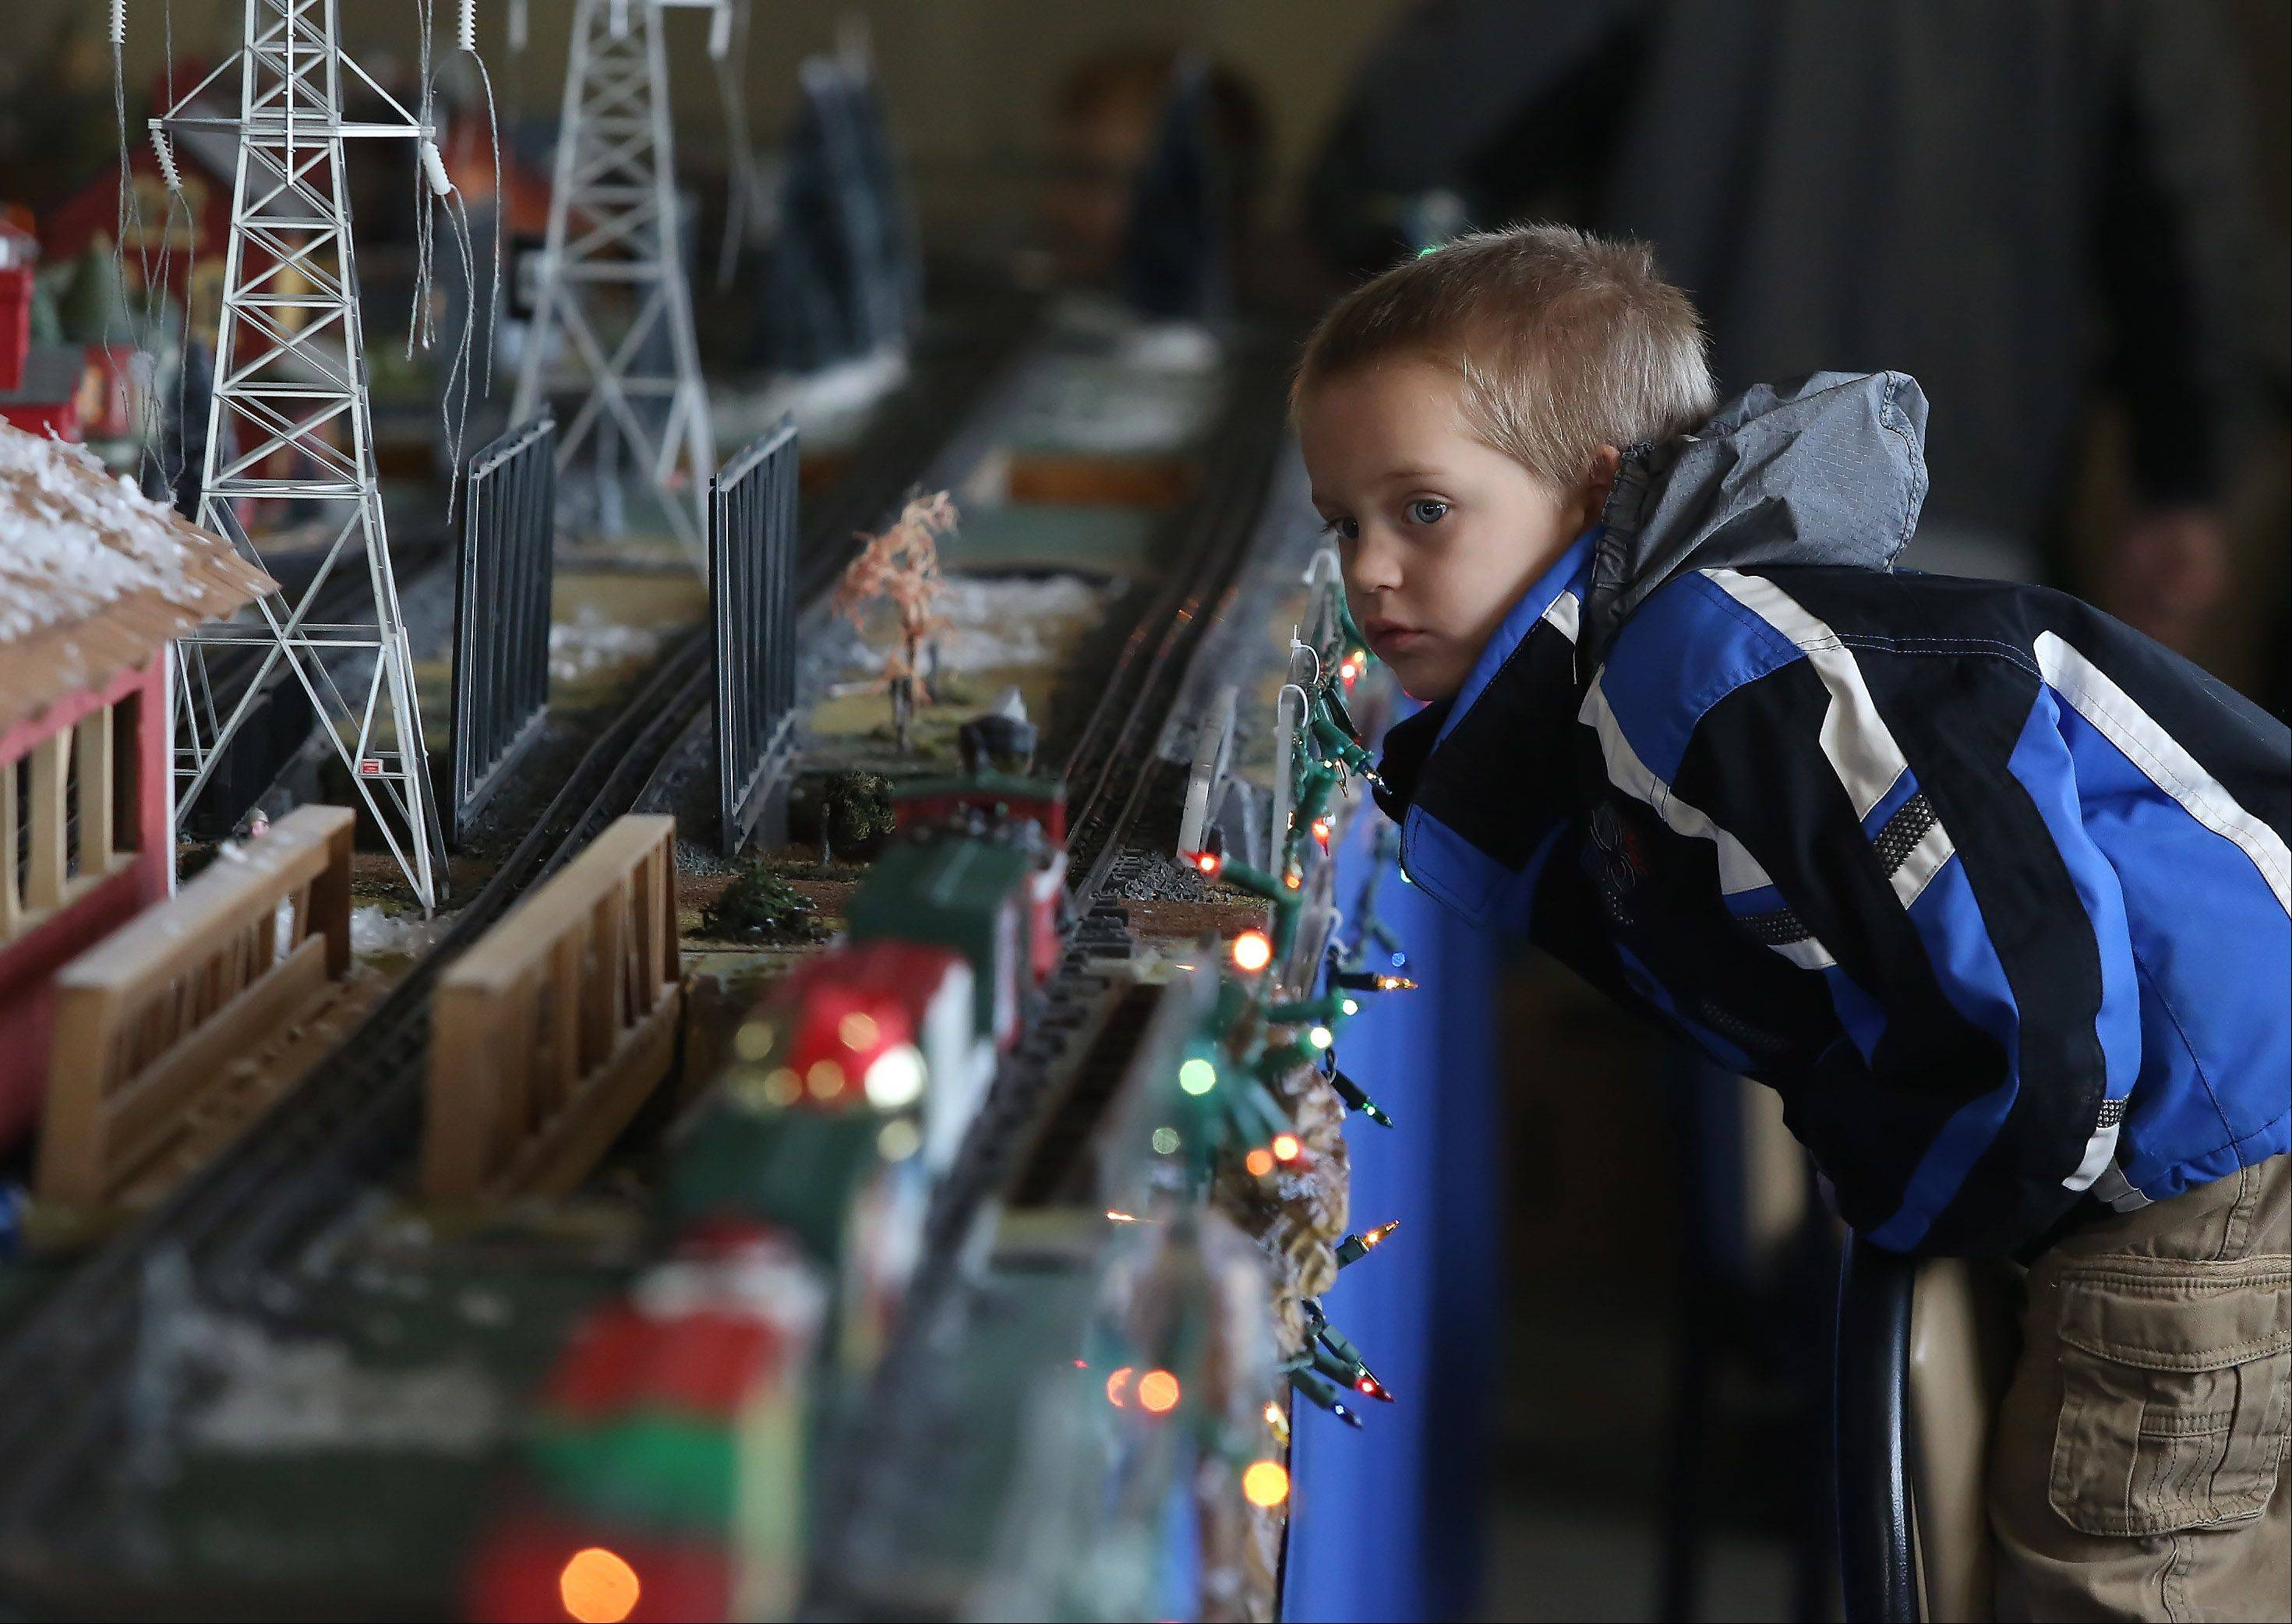 Four-year-old Mason McMurray of Mundelein watches trains go by during a Christmas-themed model train display Sunday at Fremont Public Library in Mundelein. The event was sponsored by the North Central O Gaugers Model Railroad Club, Inc. Children and families watched as trains passed by snow-covered towns and holiday crowds.